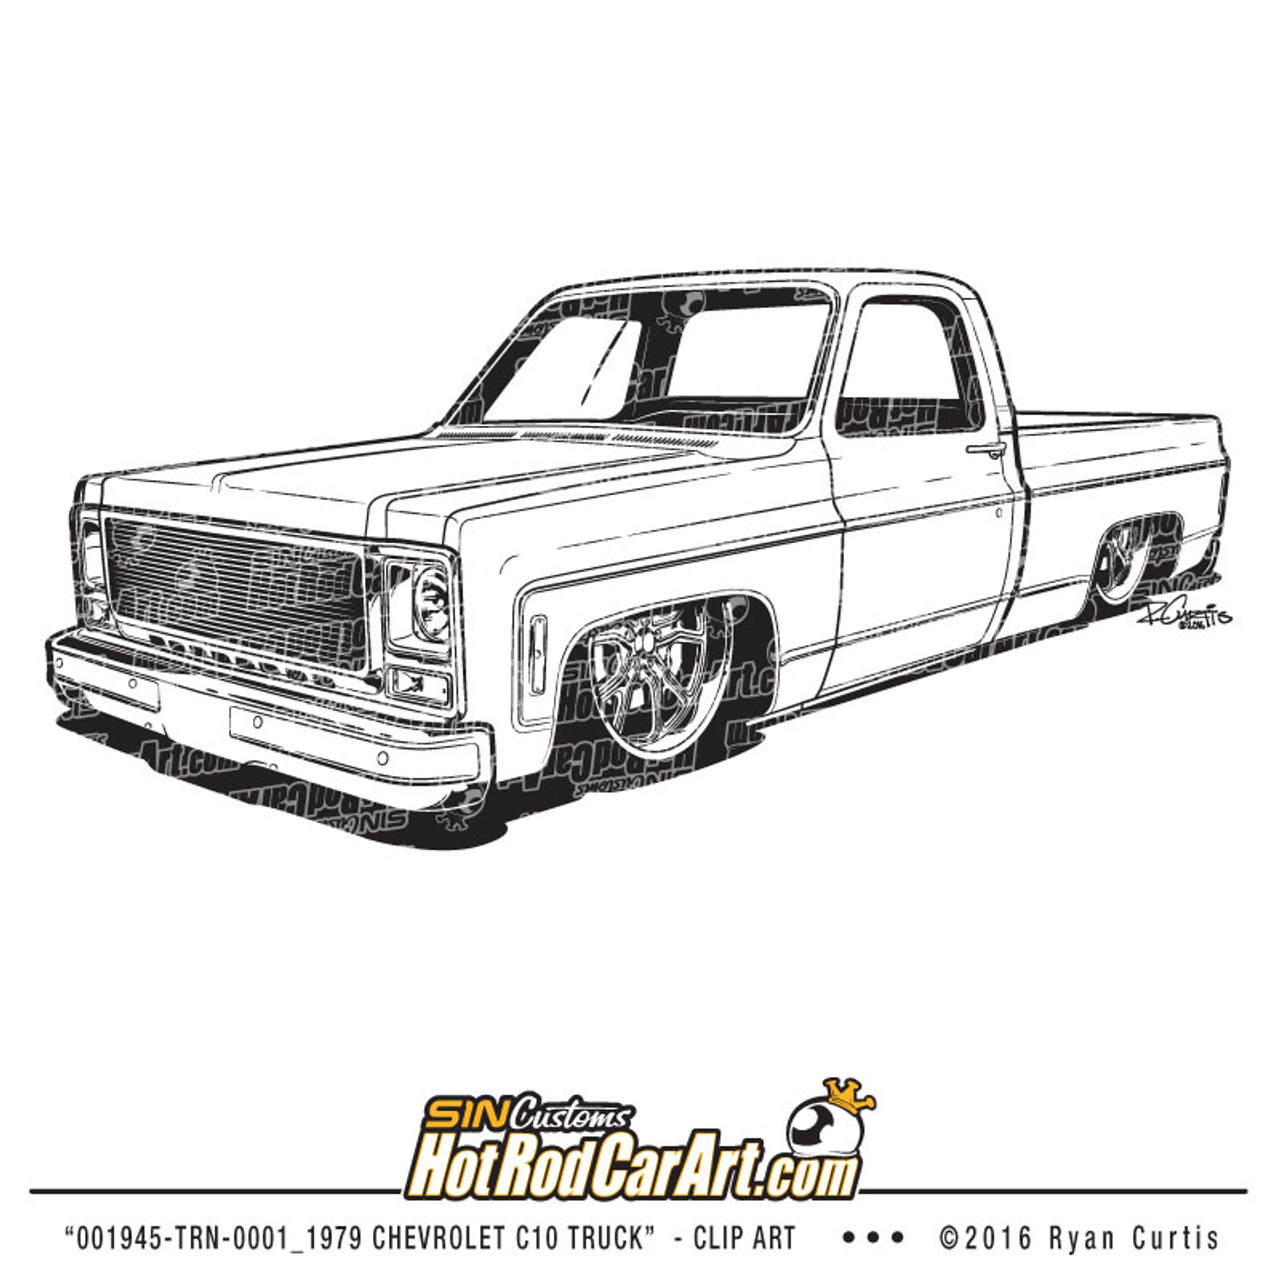 1979 chevrolet c10 pickup clip art illustration [ 1280 x 1280 Pixel ]